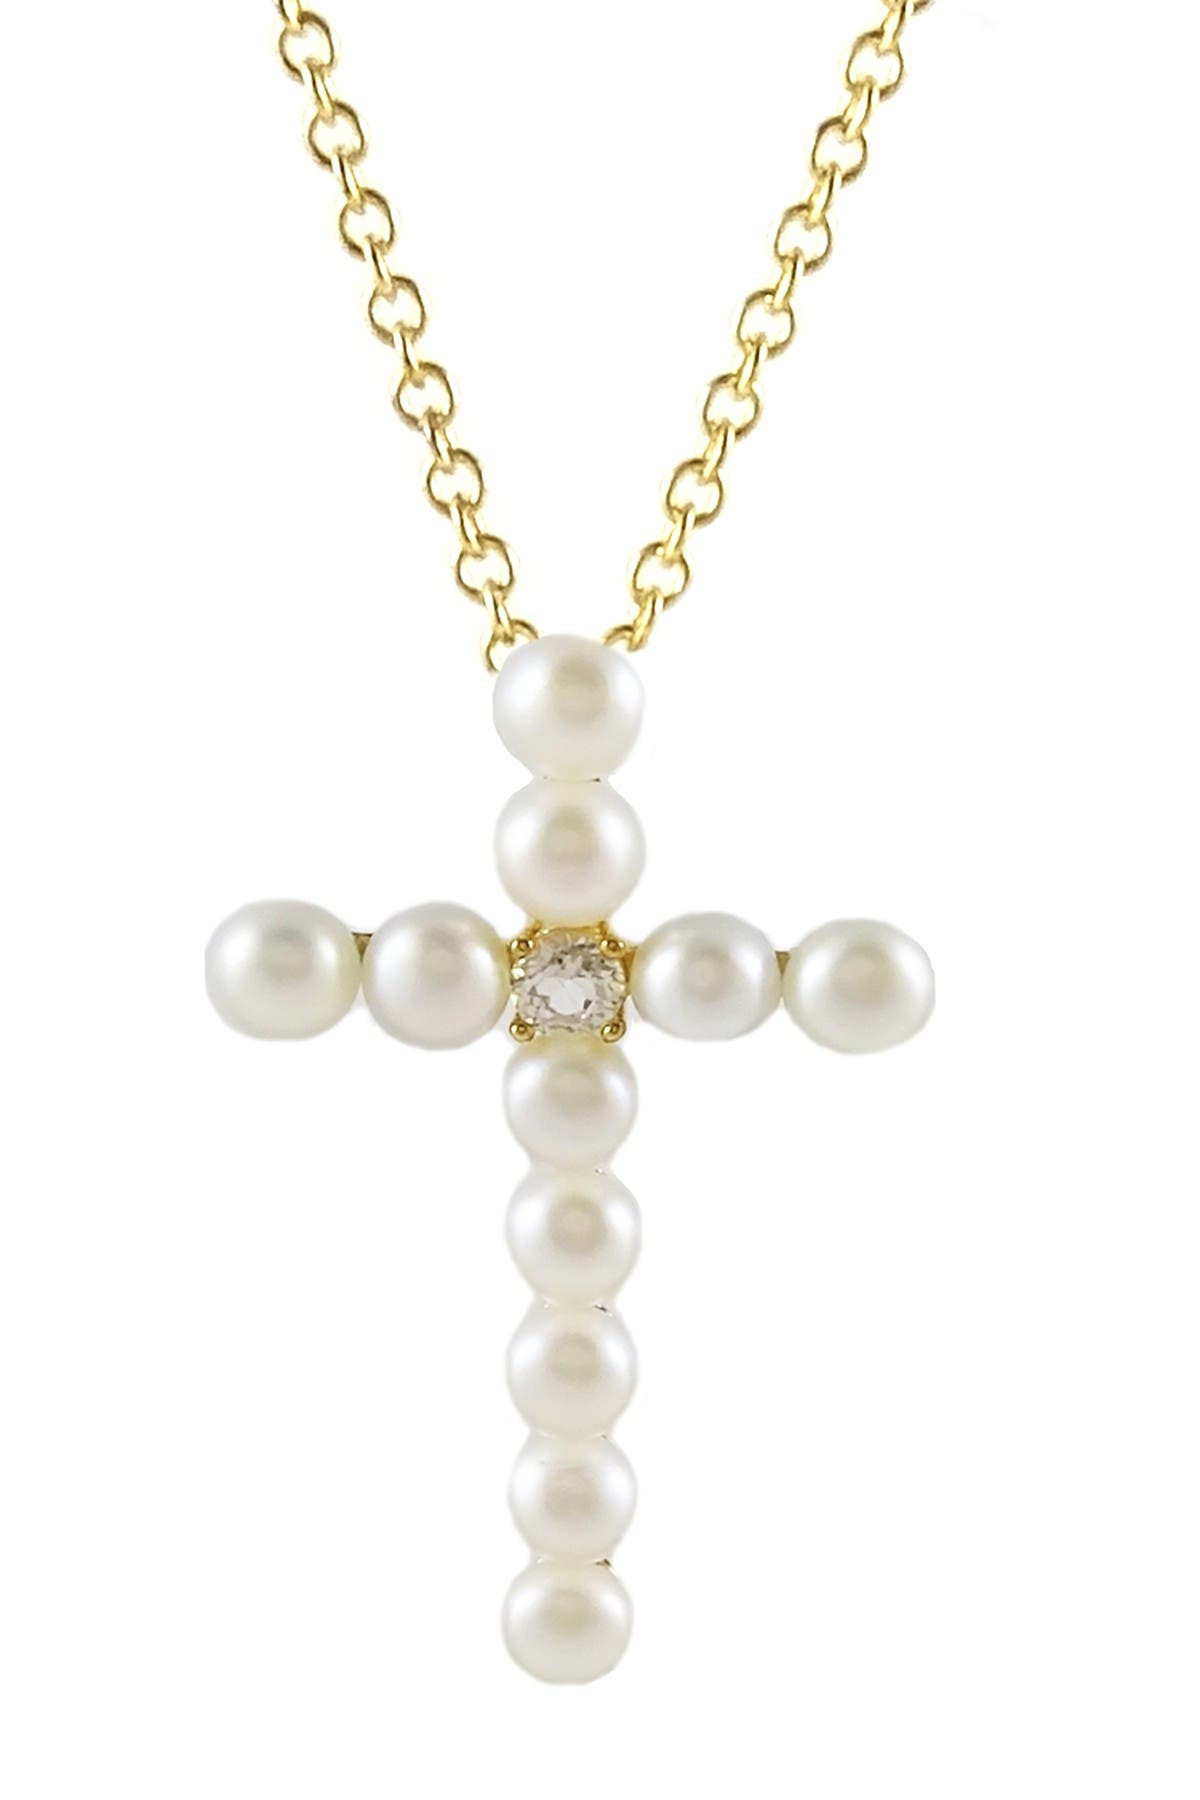 Image of Savvy Cie 18K Yellow Gold Vermeil 5.5mm Freshwater Pearl Cross Pendant Necklace